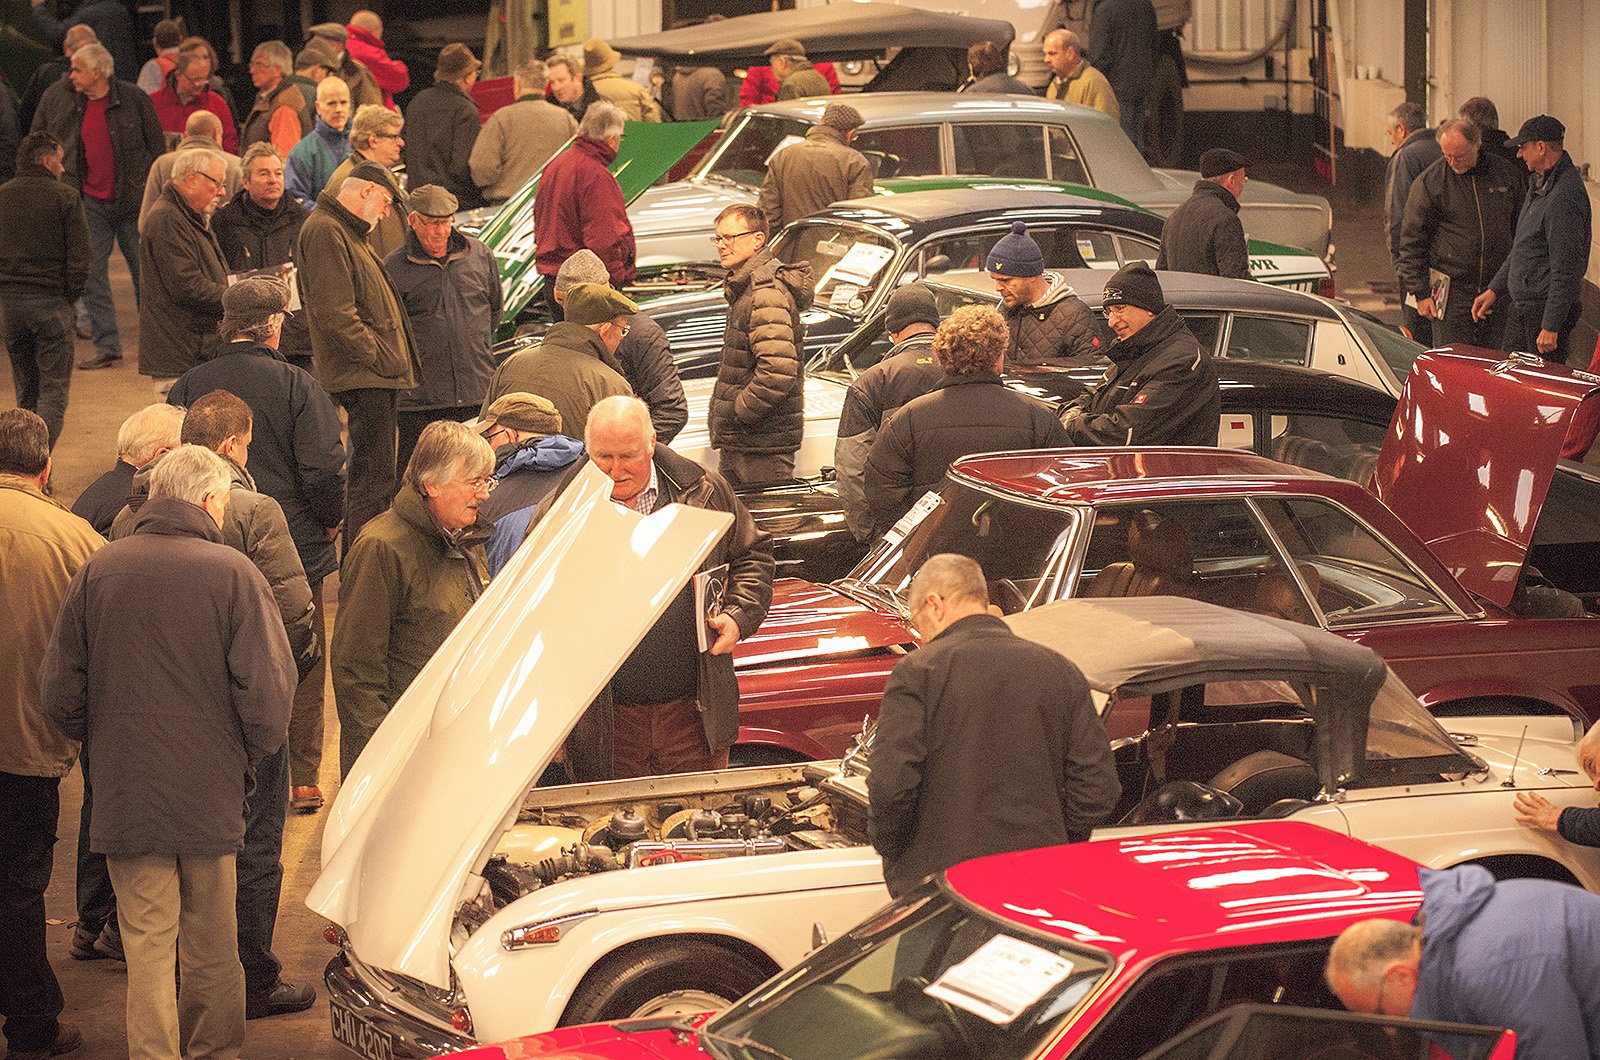 Potential bidders viewing classic cars before car auction commences